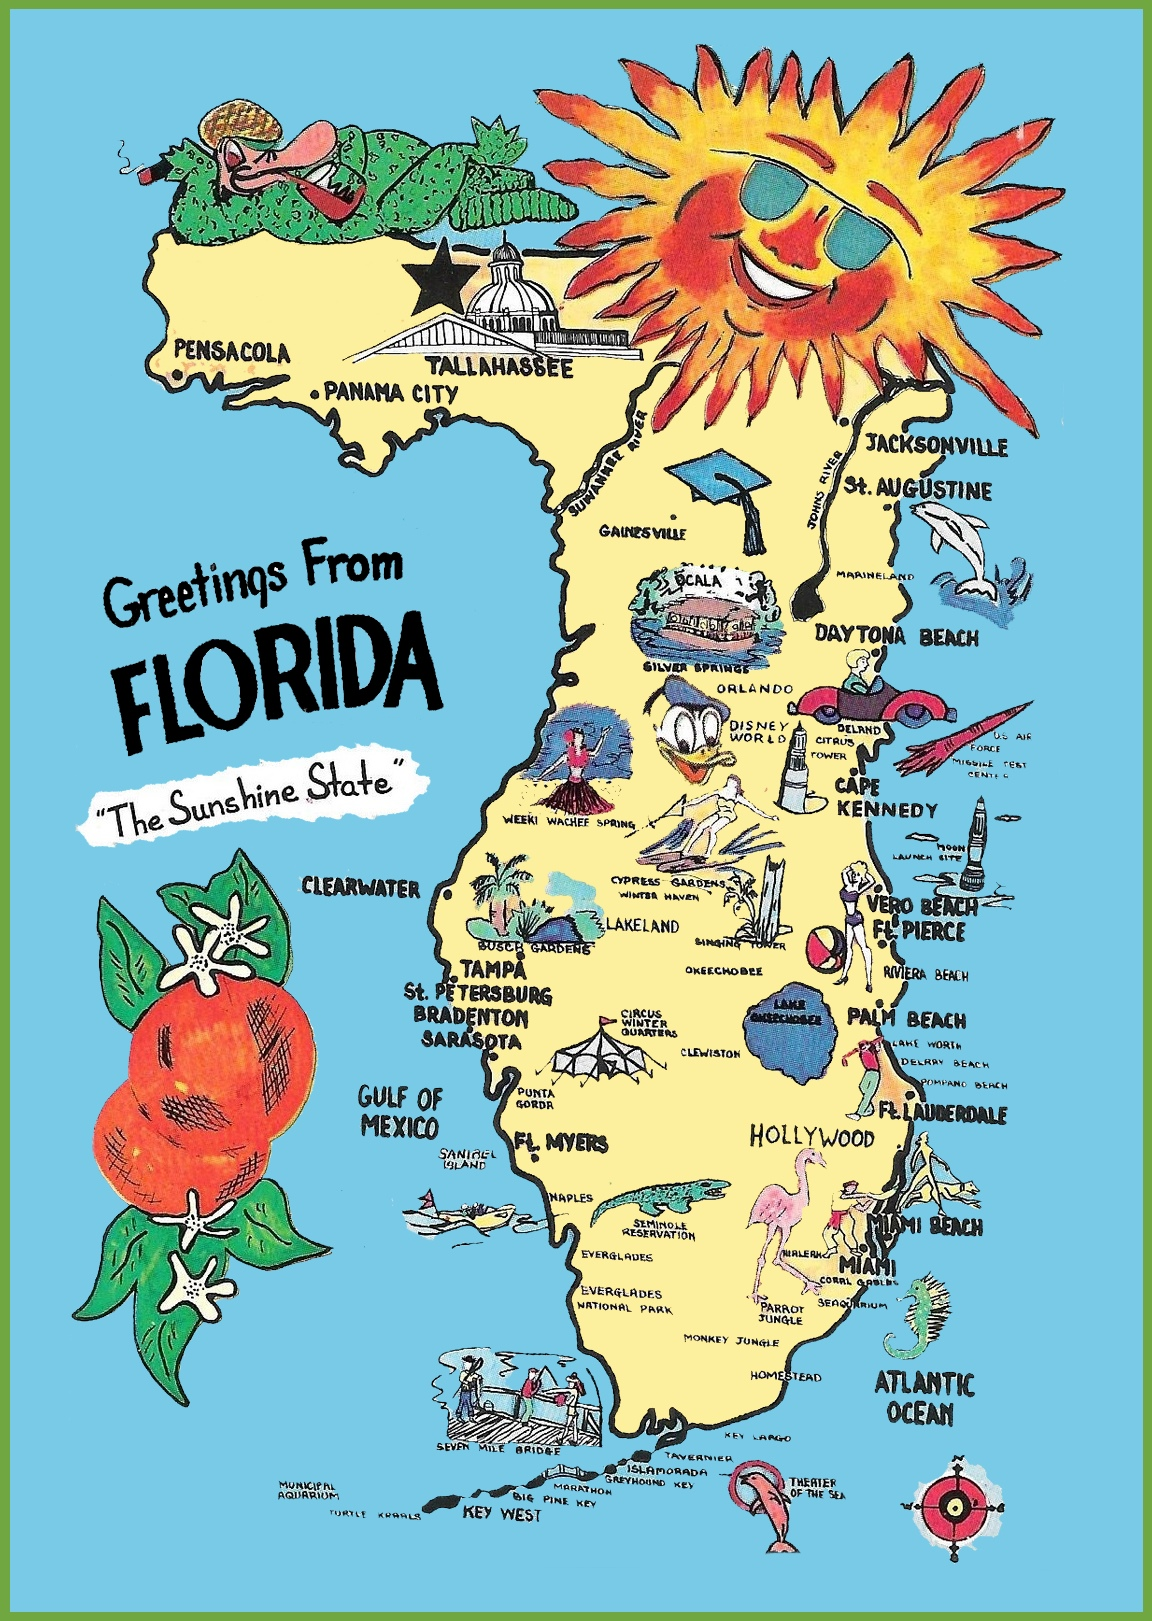 Florida State Maps | USA | Maps of Florida (FL)